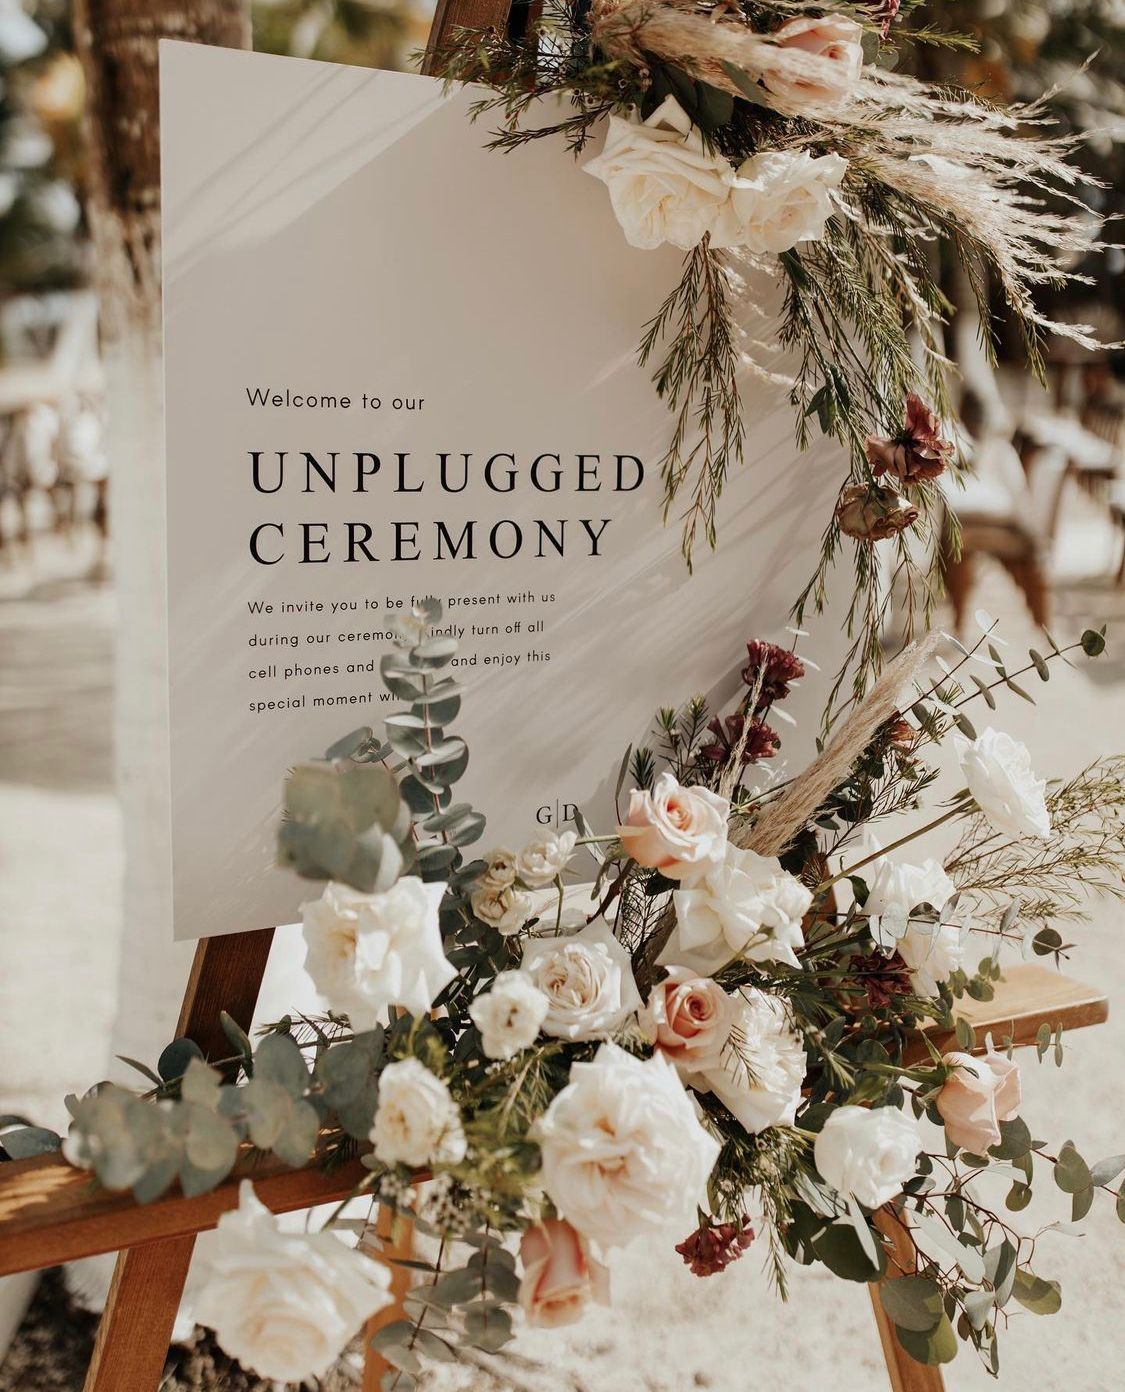 Unplugged Ceremony Floral Sign With Aisle